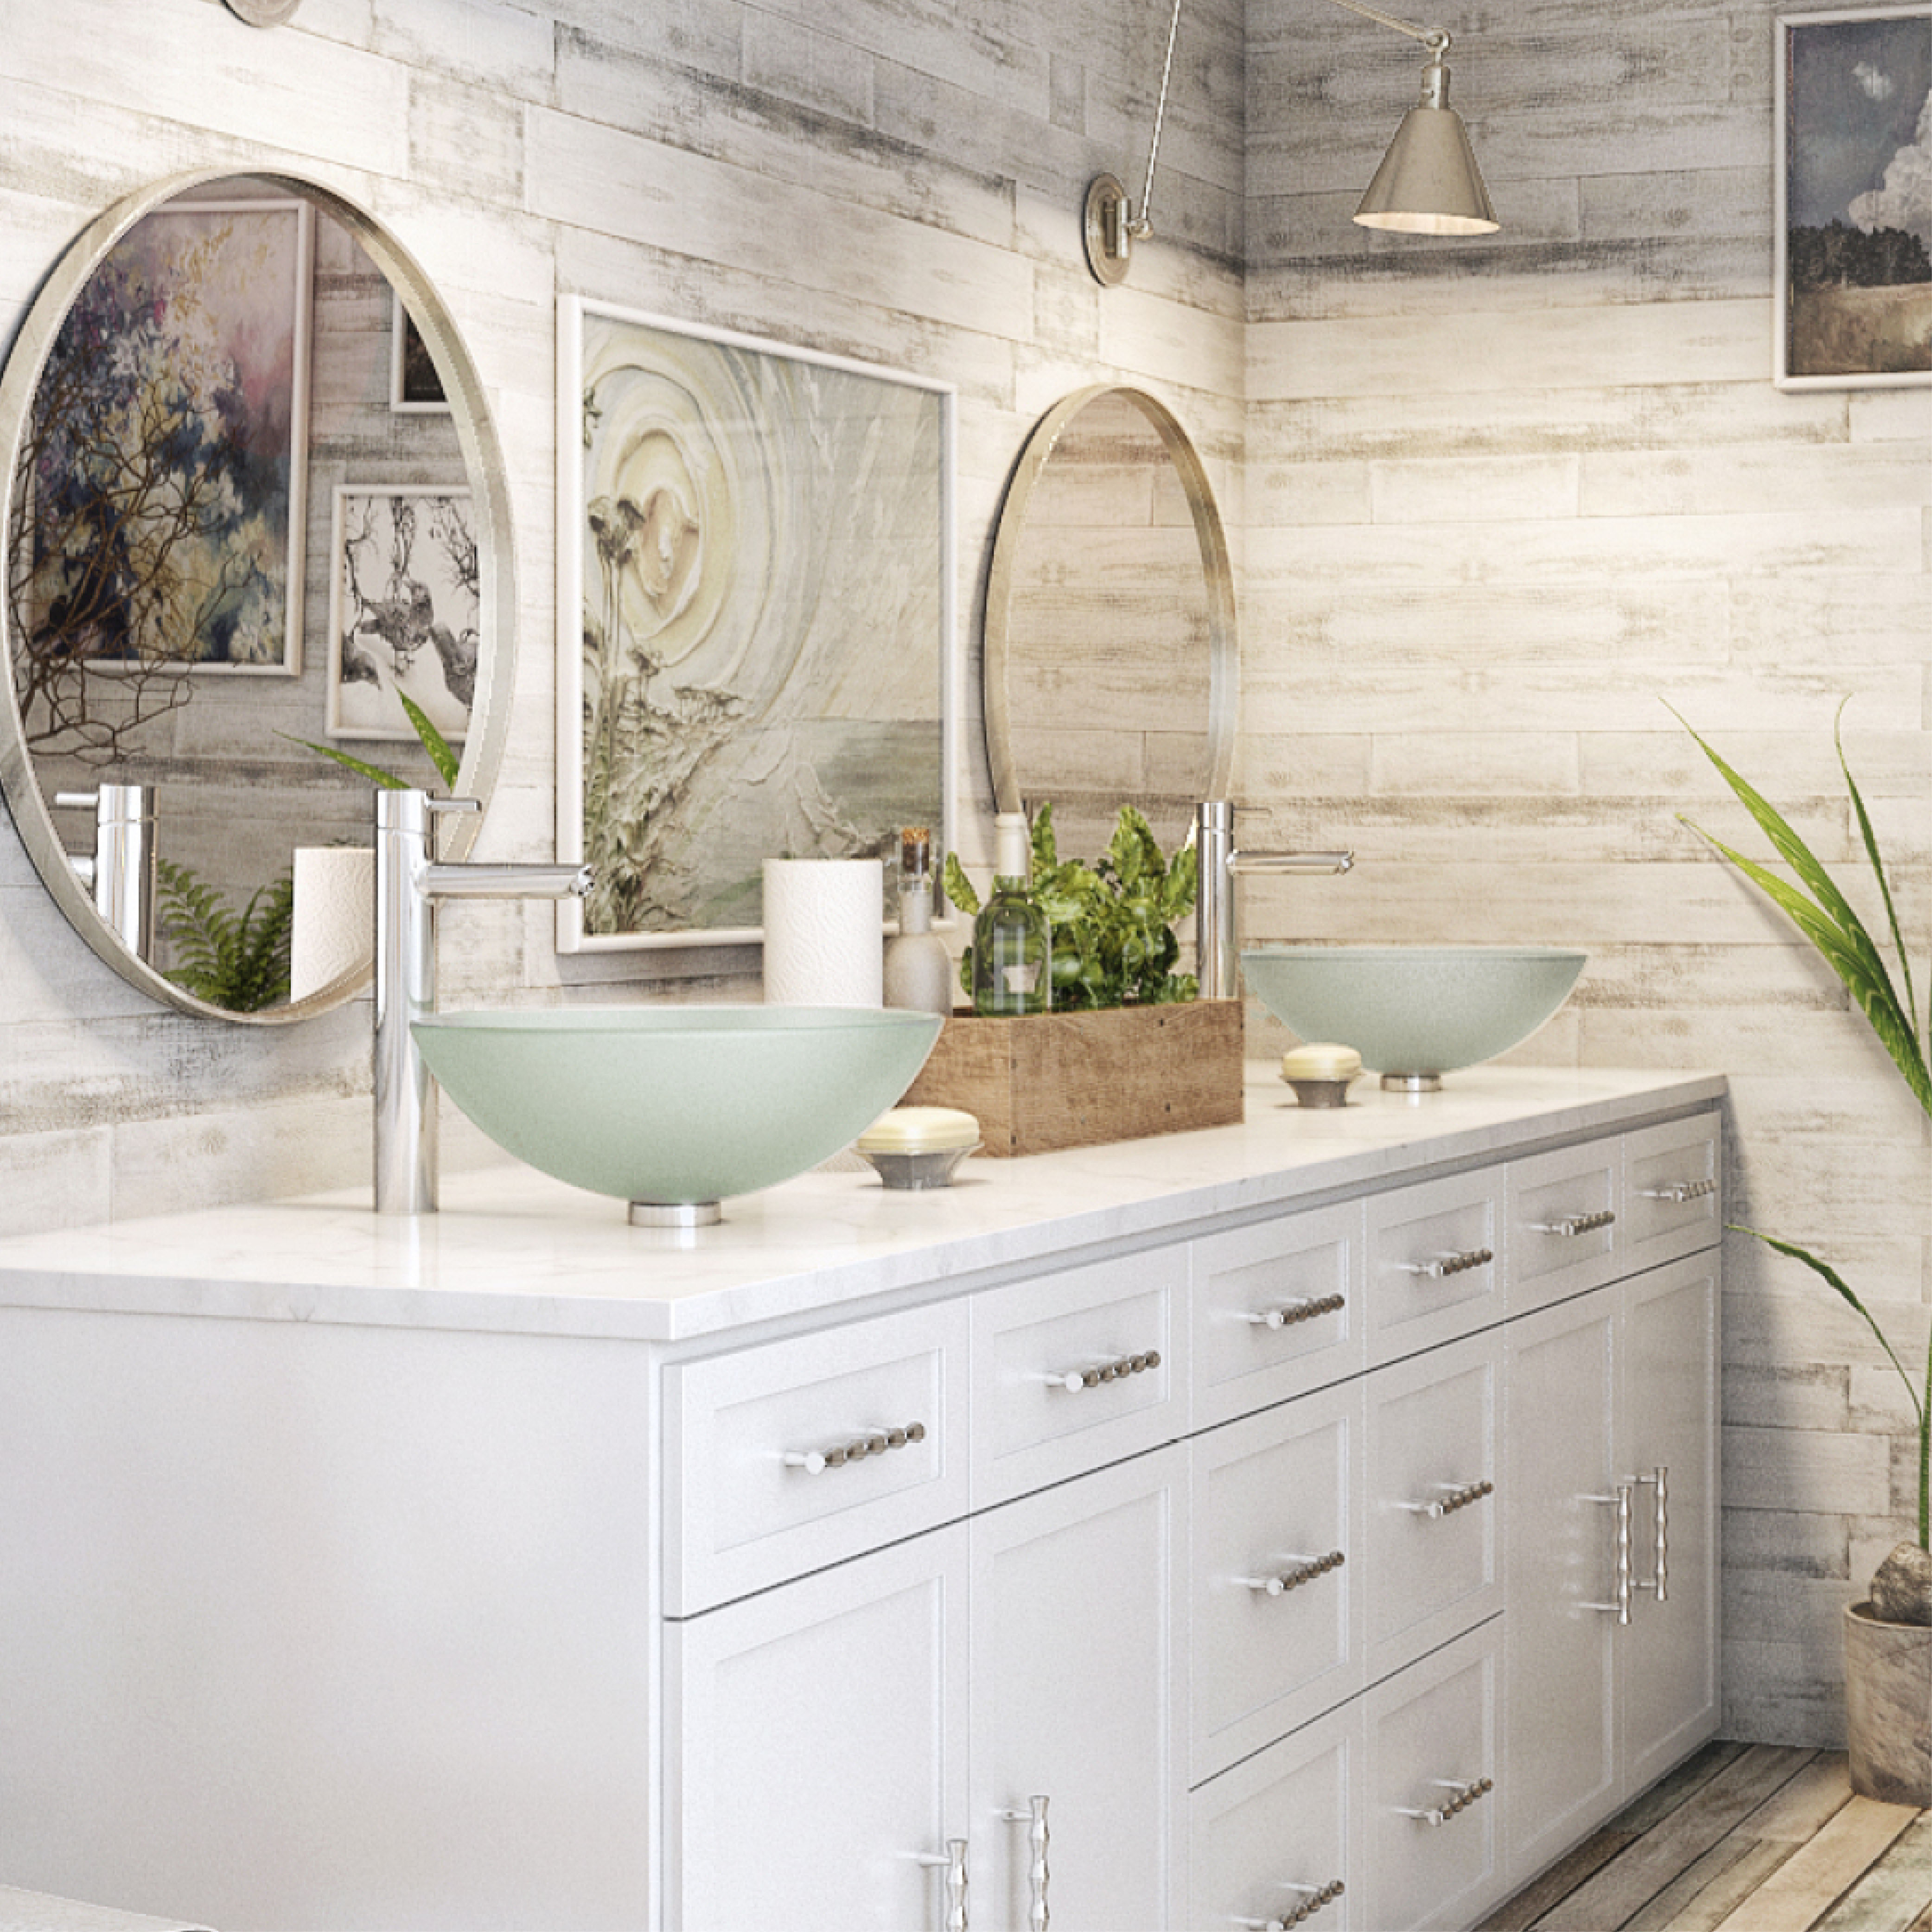 5 Steps to Easy Bathroom Remodeling